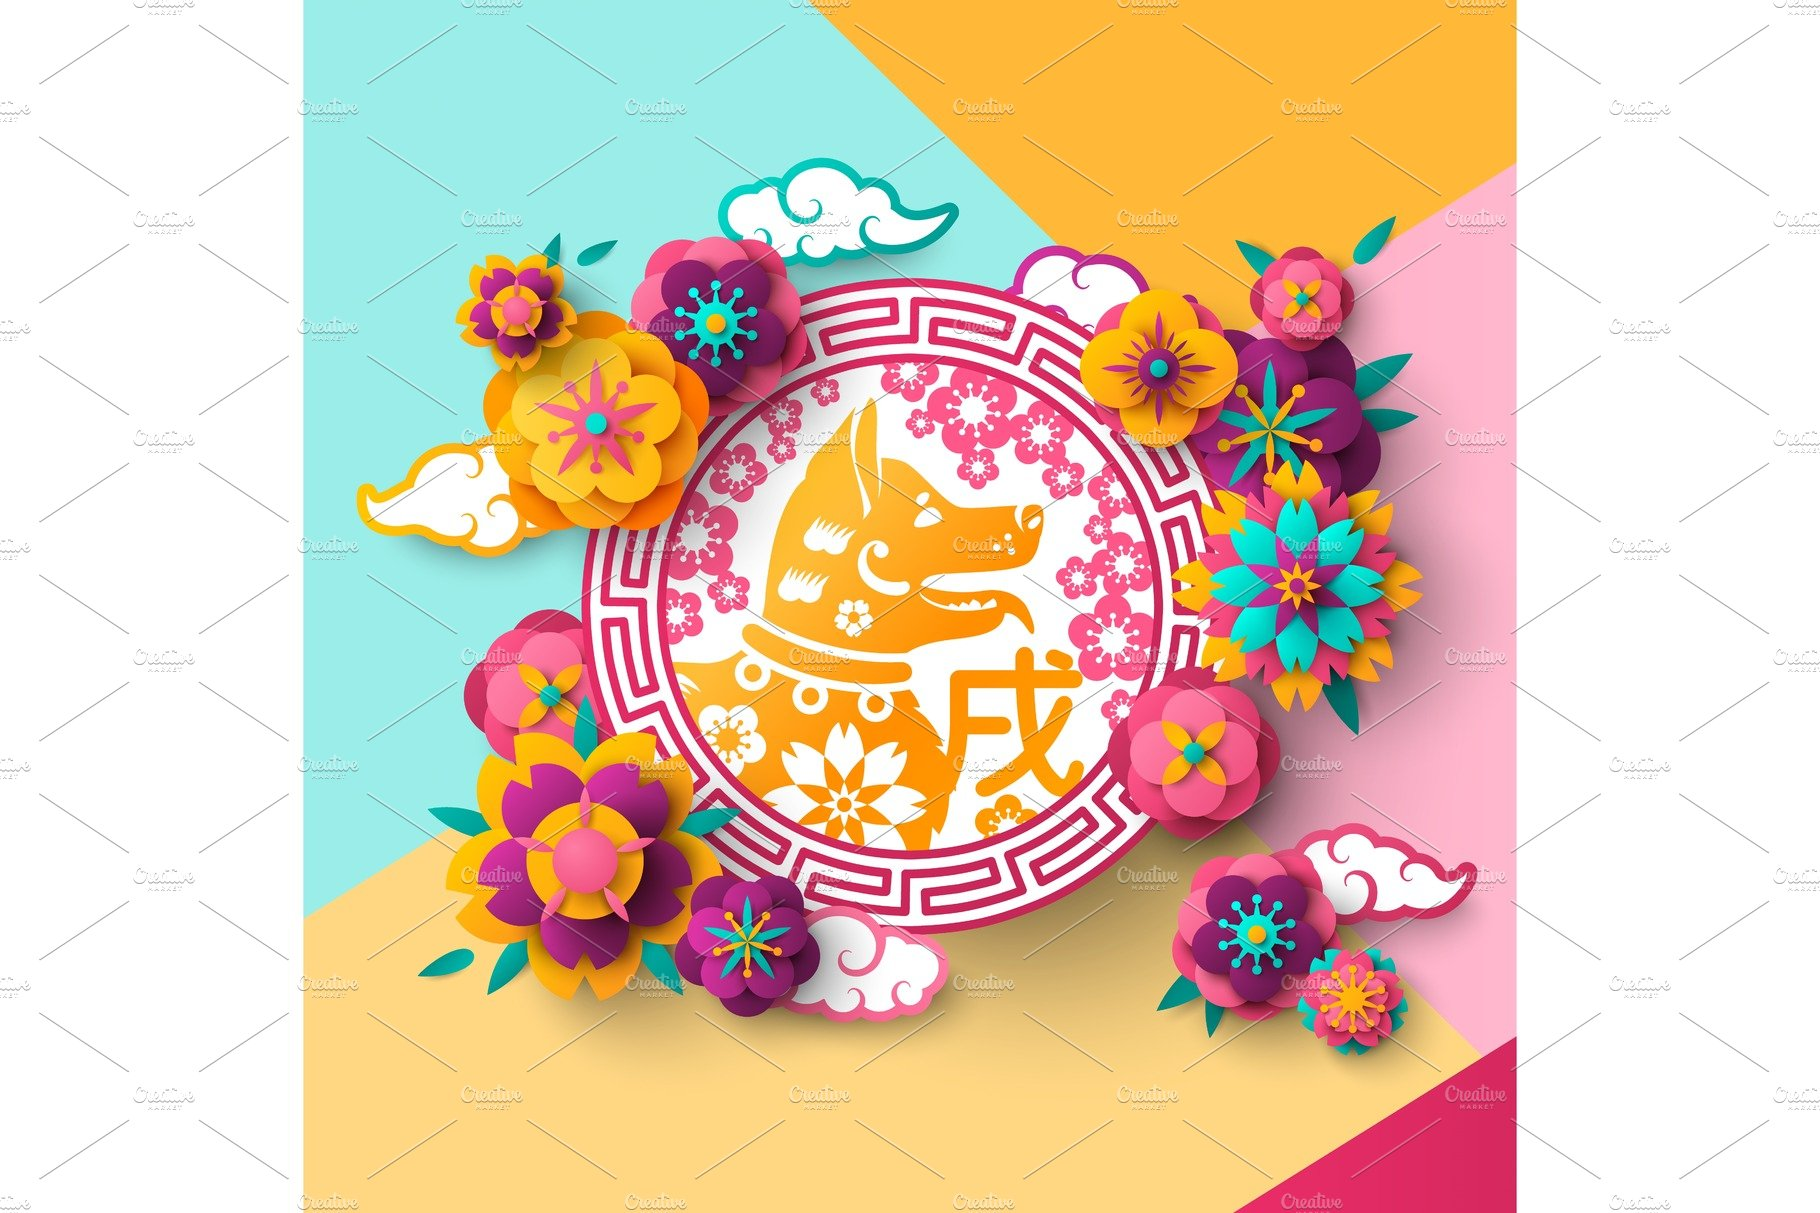 2018 chinese new year greeting card with paper cut illustrations chinese new year greeting card m4hsunfo